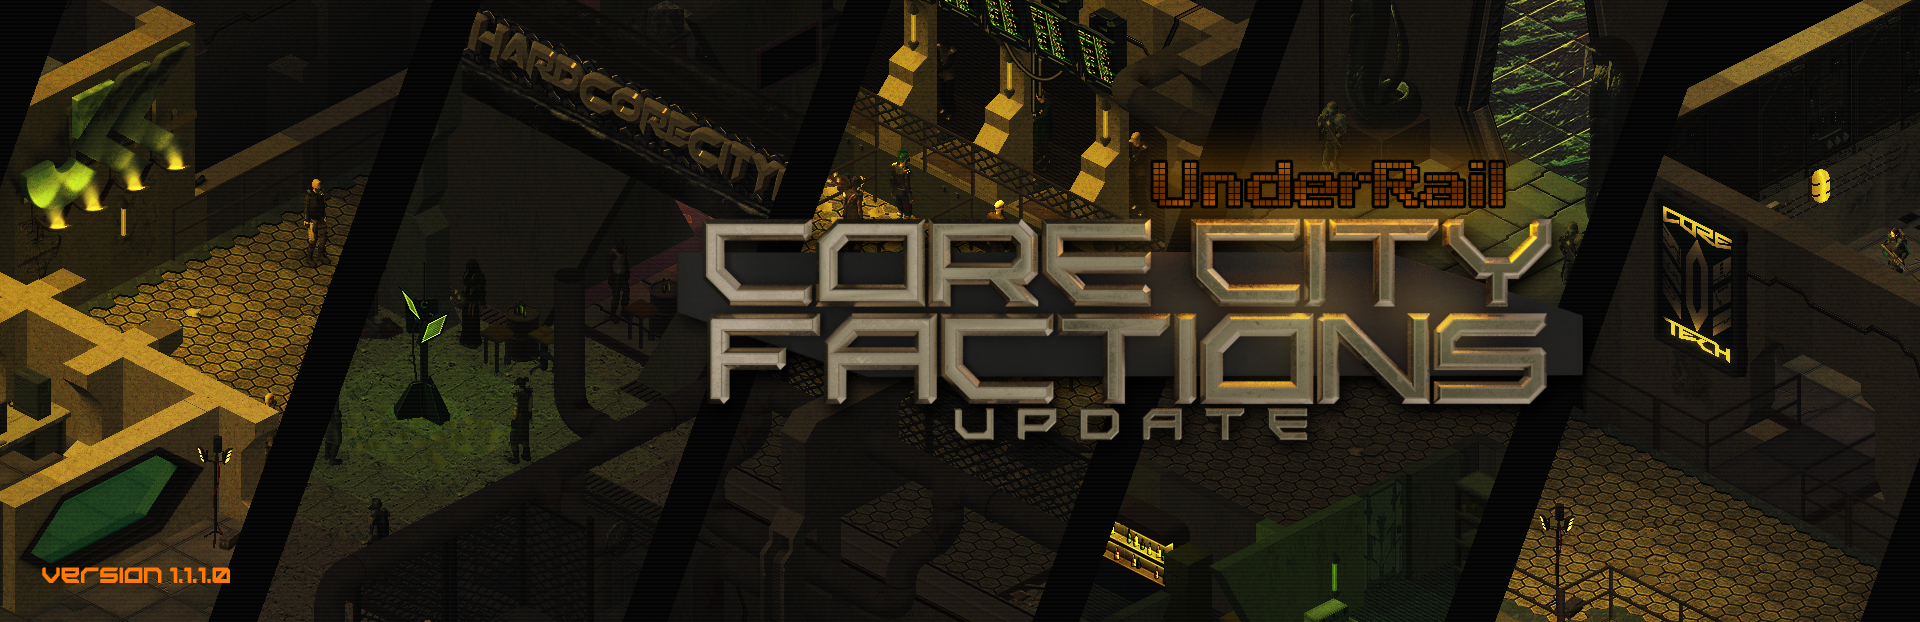 Underrail - Core City Factions Update - 1.1.1.0